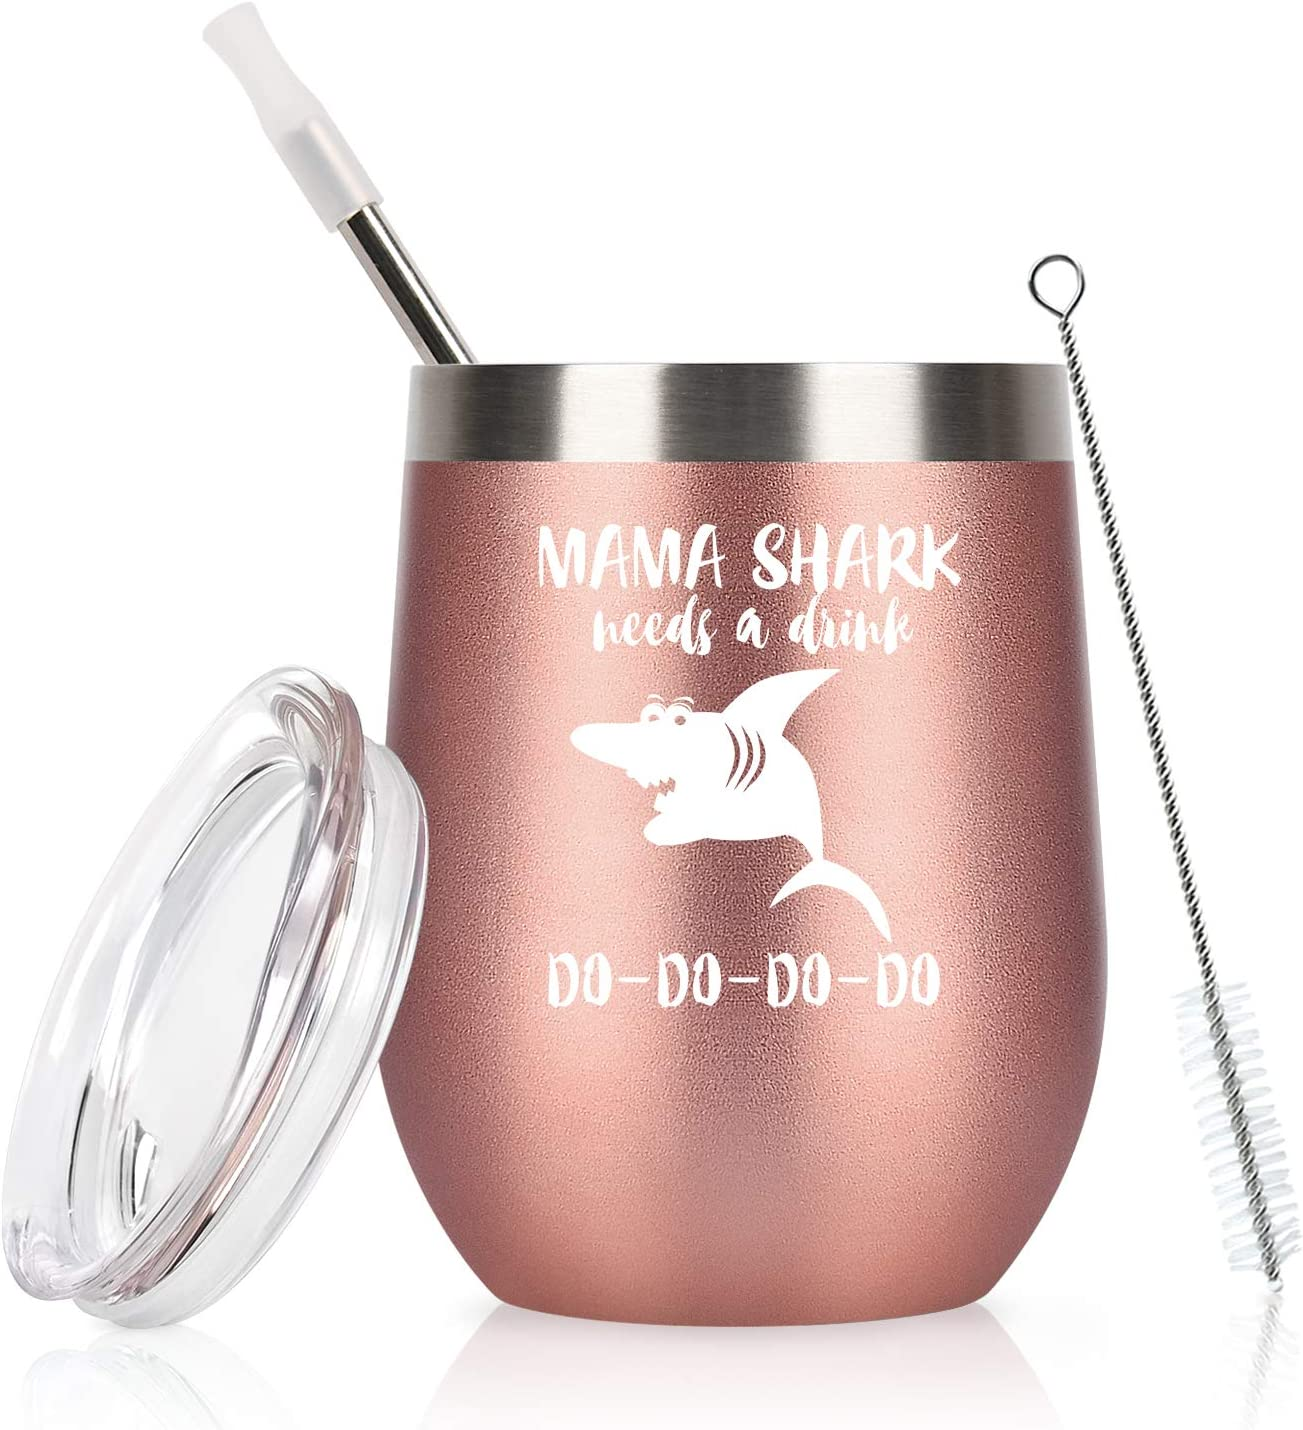 Mama Shark Needs a Drink Mom Wine Tumbler with Lid and Straw Mothers Day Birthday Gifts for Mom New Mom Her Funny Insulated Stainless Steel Wine Tumbler Mommy Shark Wine Tumbler (12 Oz, Rose Gold)